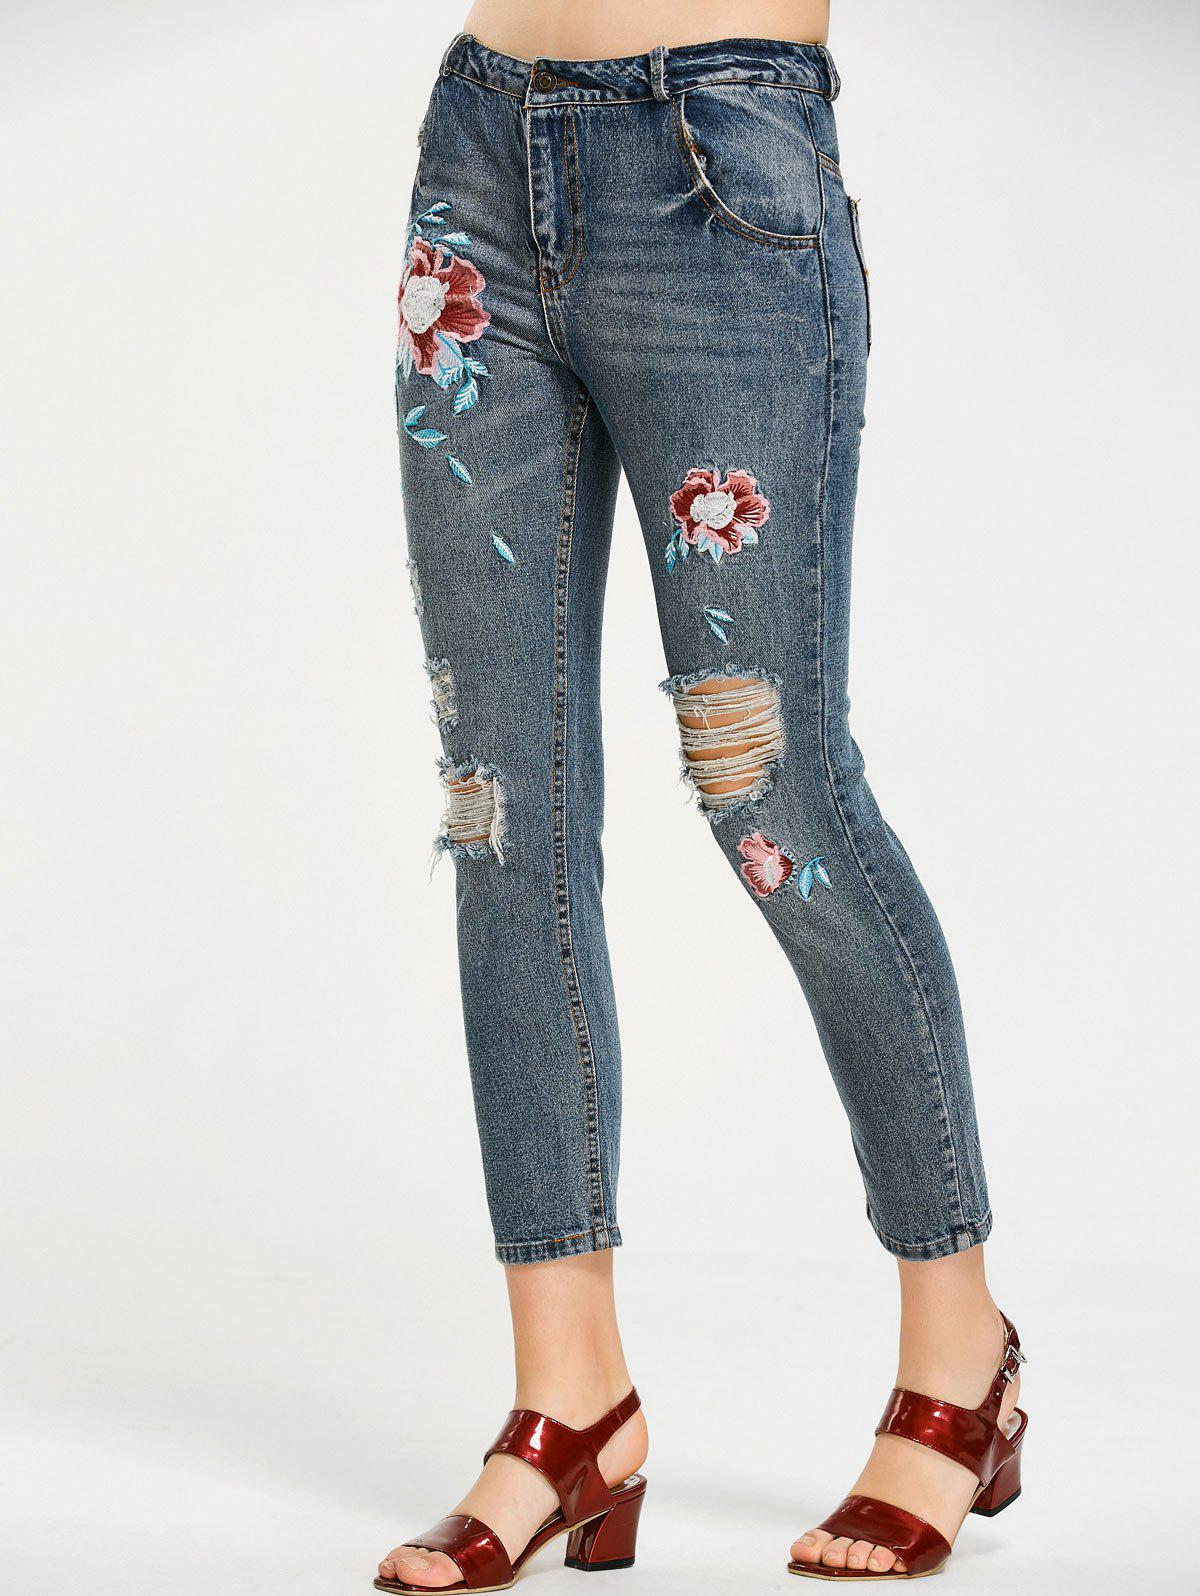 Floral Embroidered Destroyed Ninth Jeans 225193101